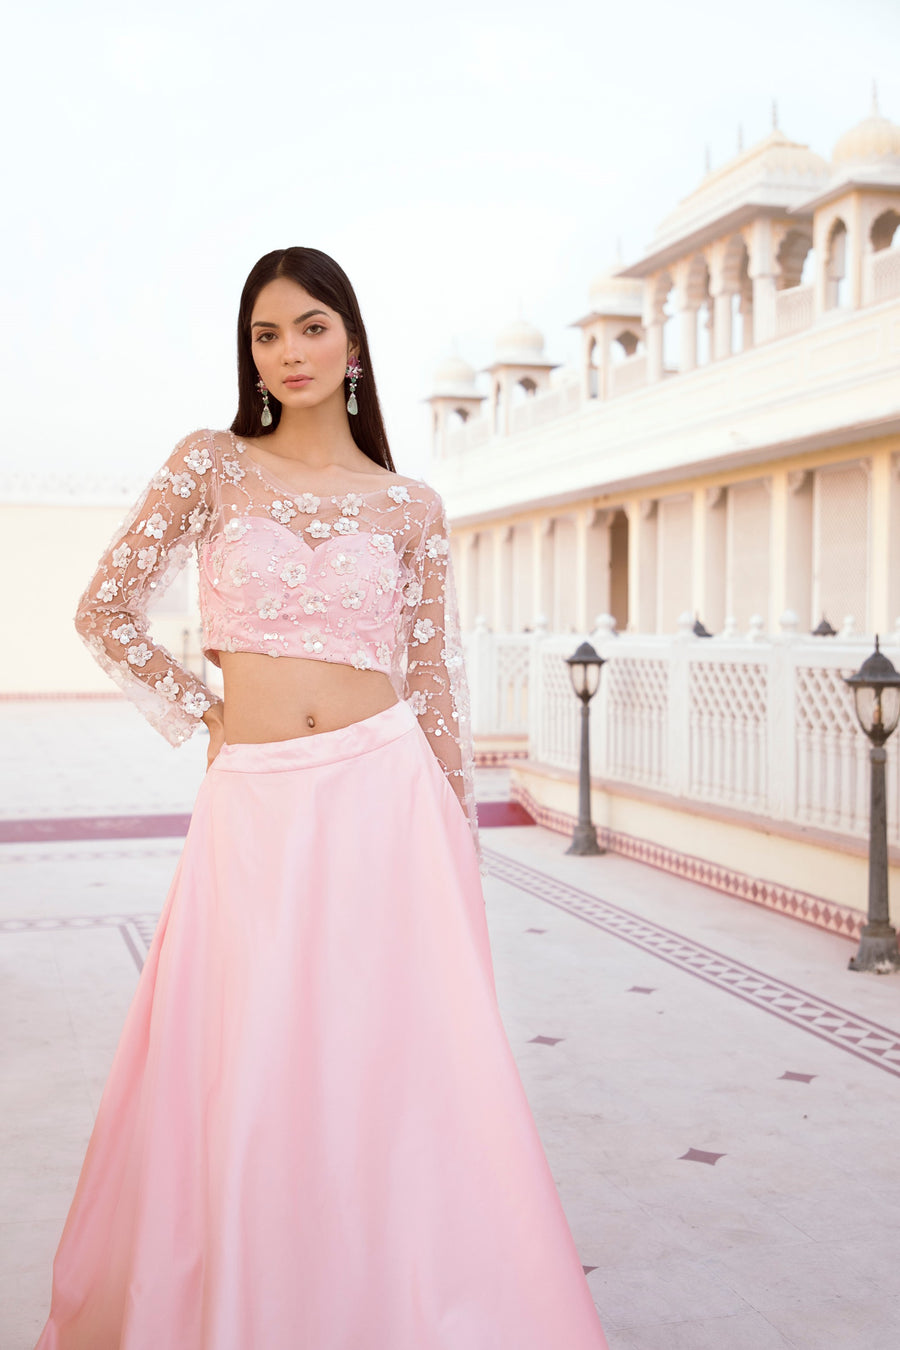 ROSE PINK BLOUSE WITH PEARL EMBROIDERY & SATIN SKIRT